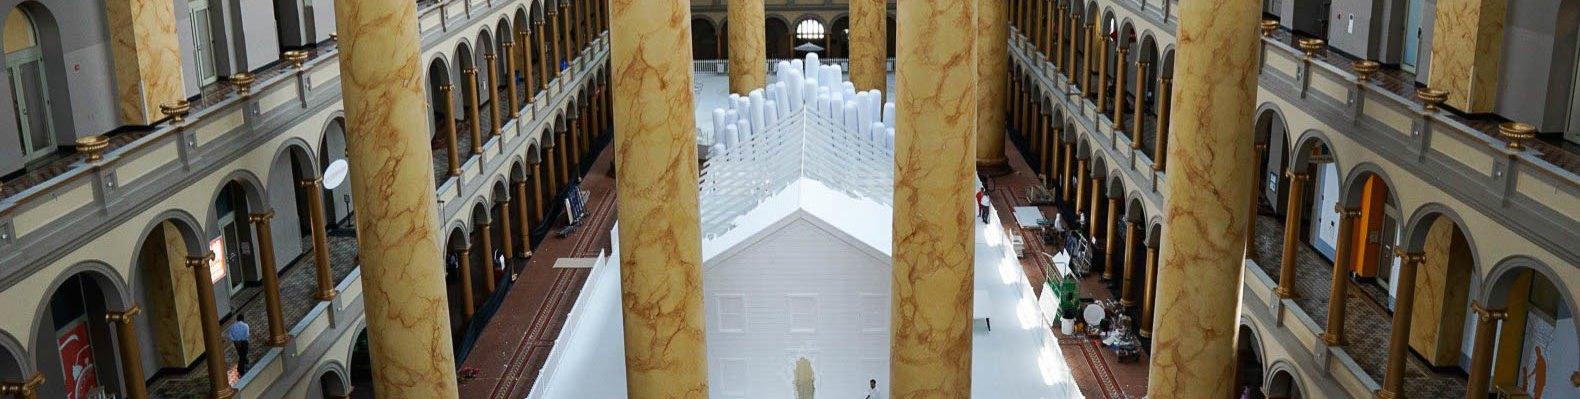 fun house exhibit in great hall of national building museum